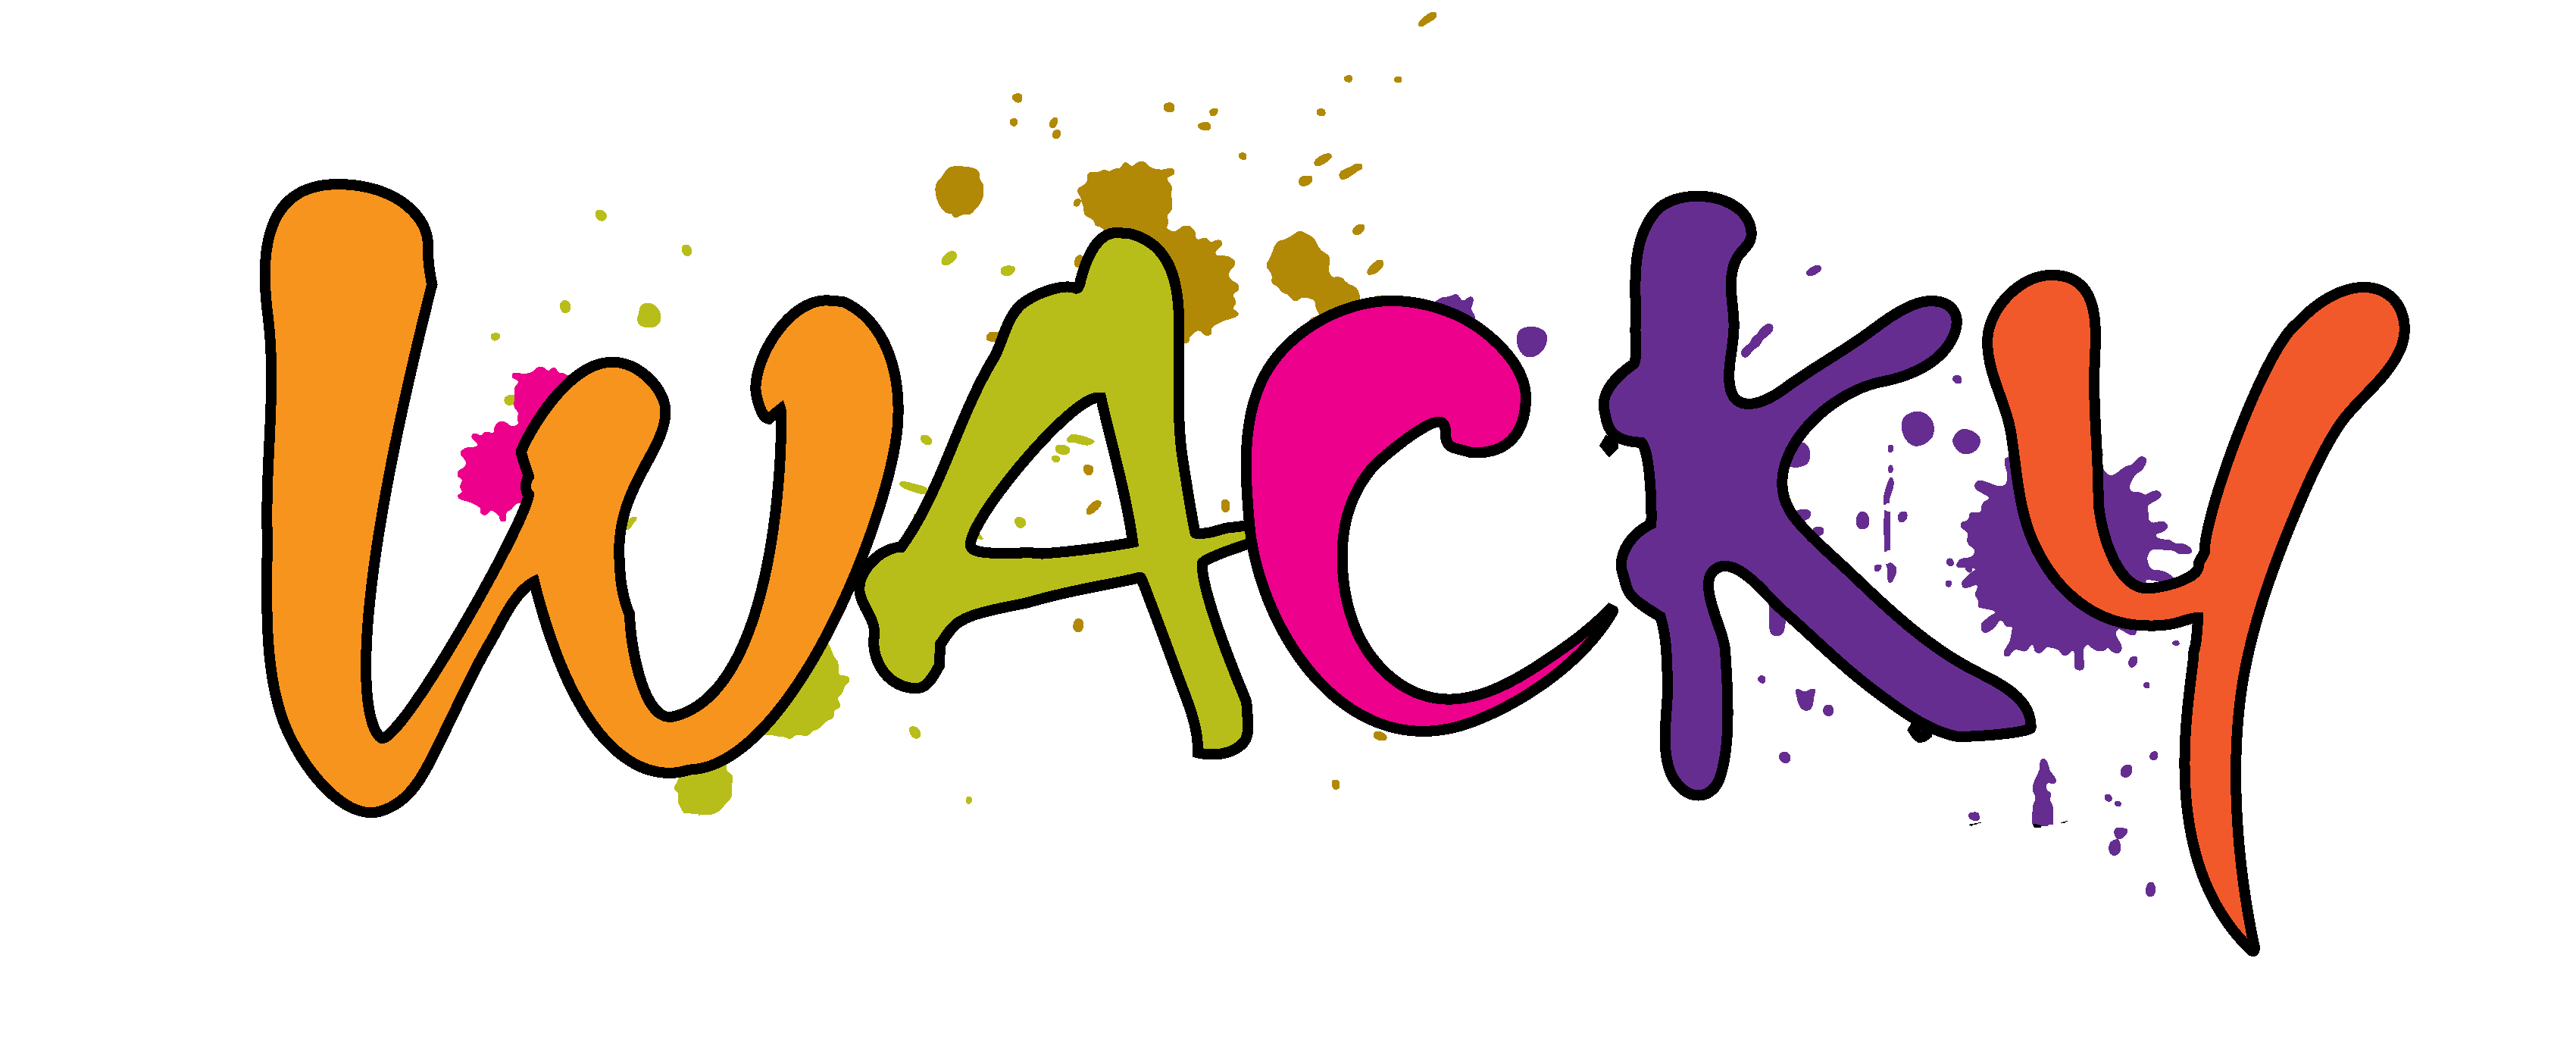 Wacky lil giggles play. Wednesday clipart whacky